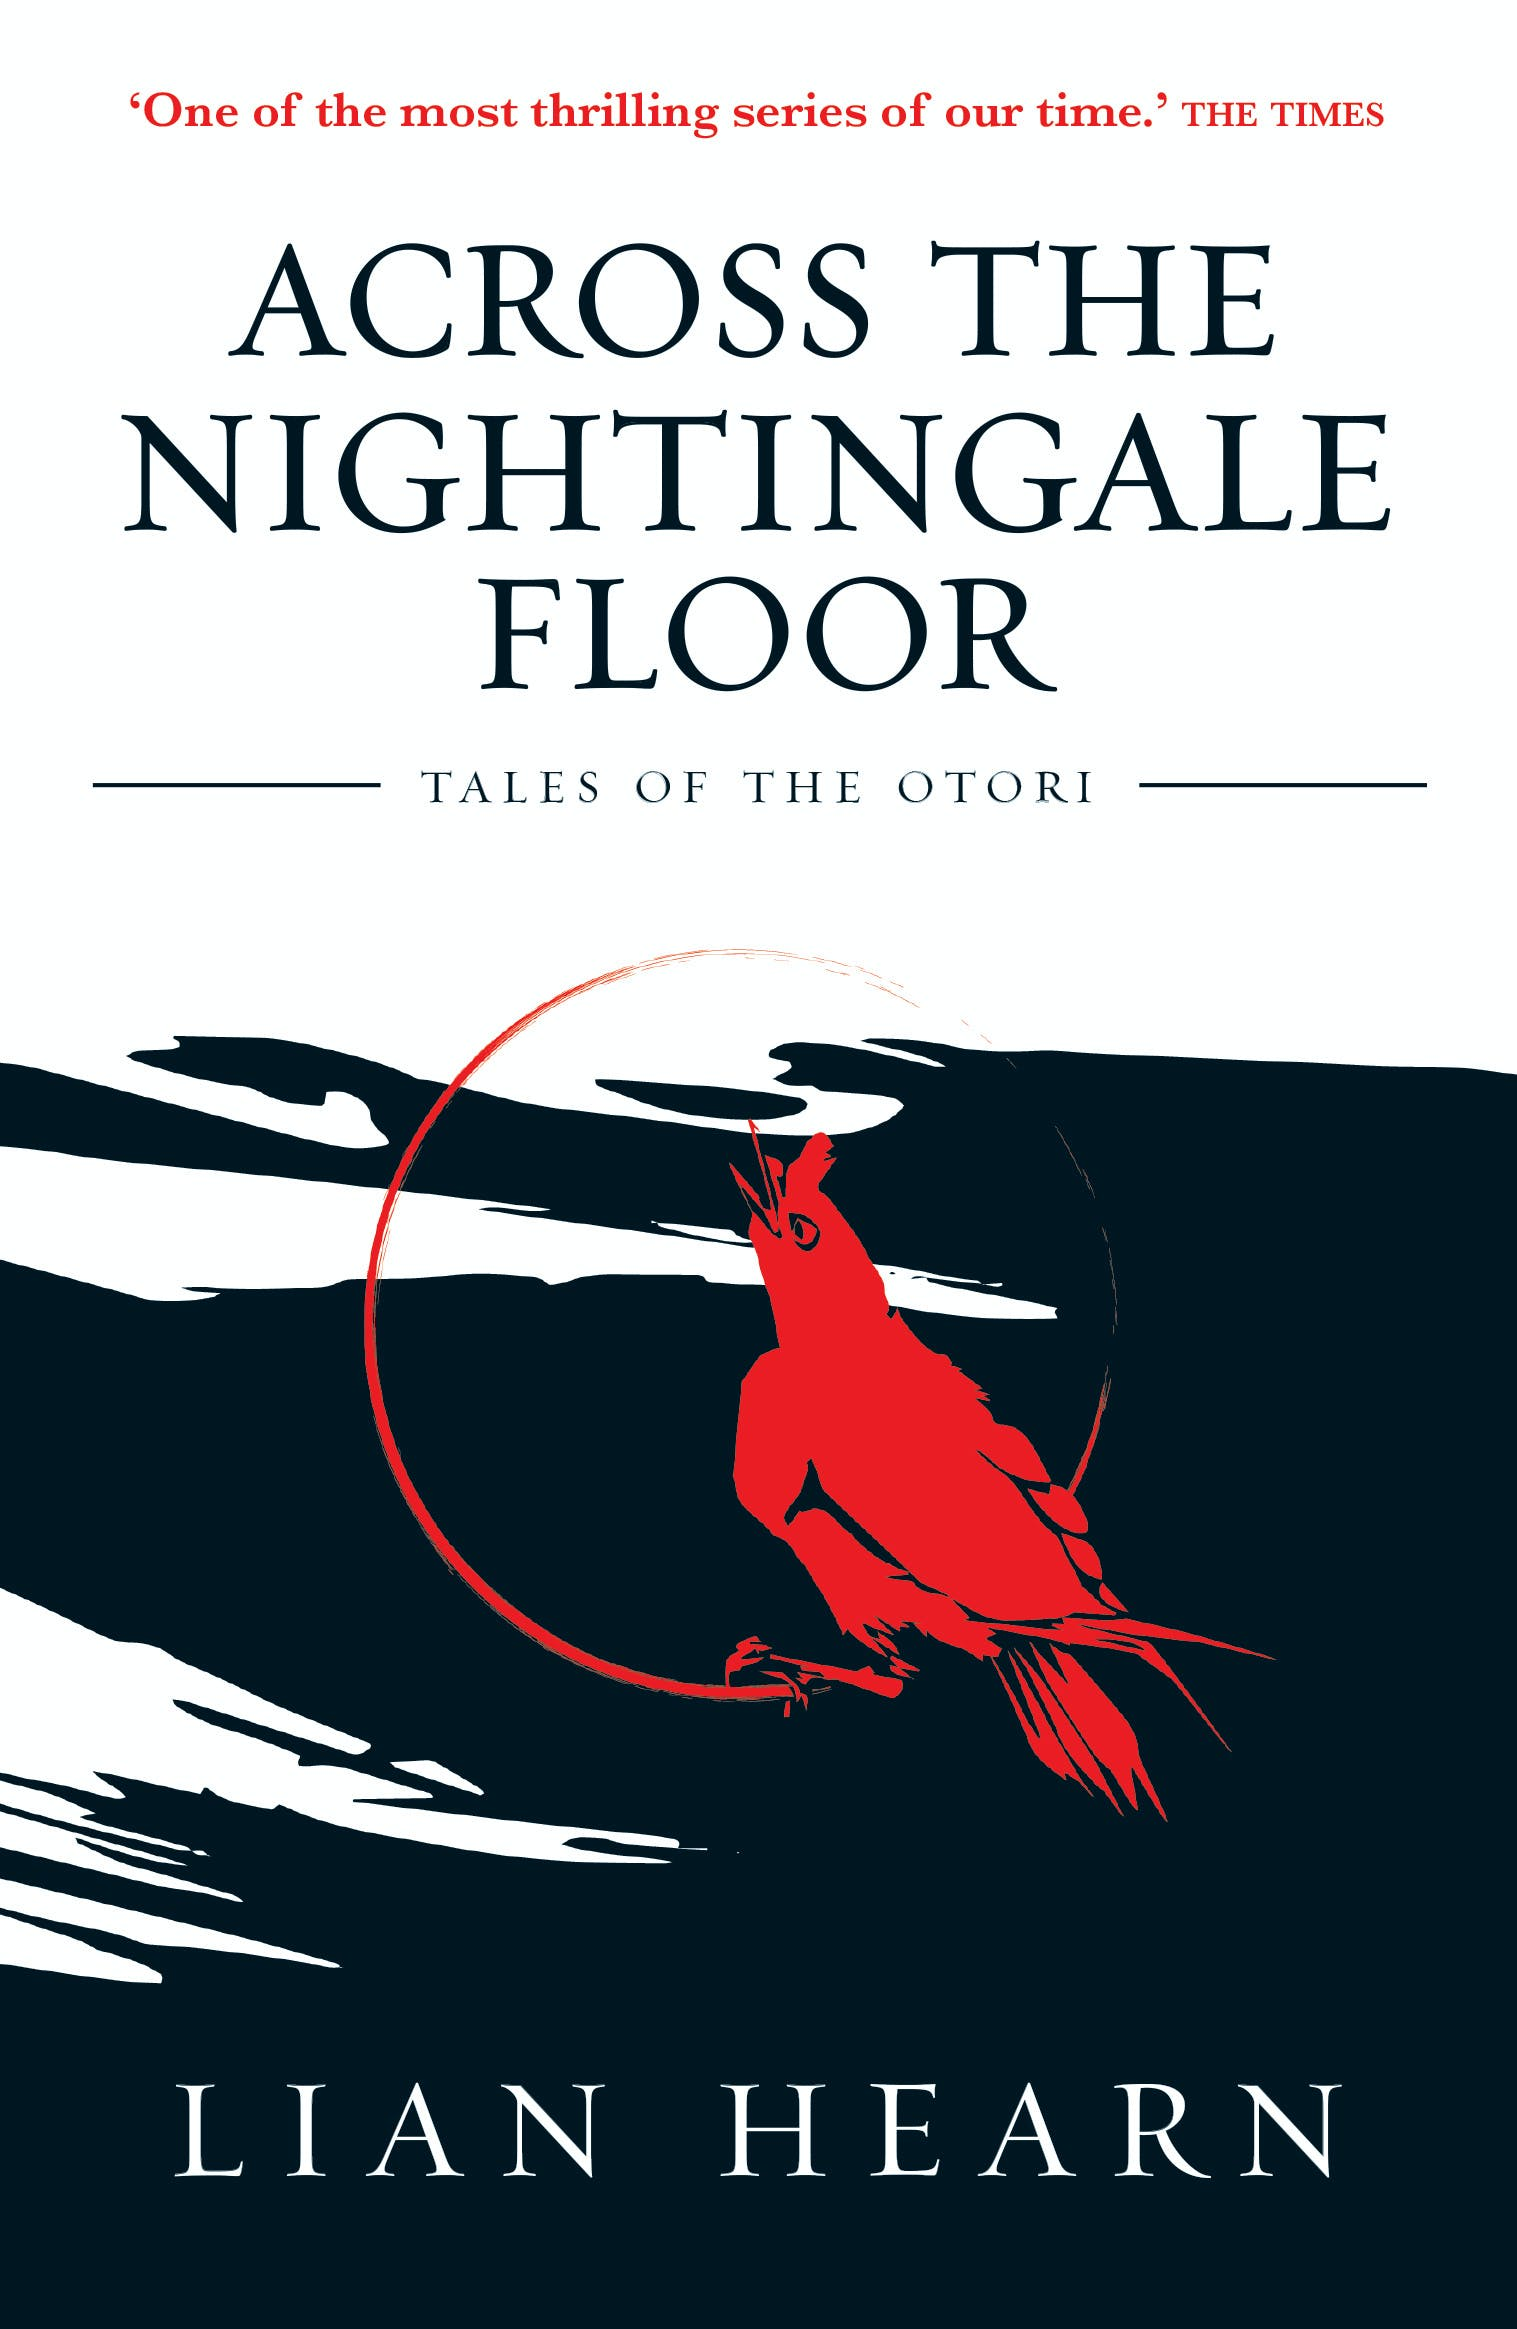 Across the Nightingale Floor: Book 1 Tales of the Otori by Lian Hearn -  Books - Hachette Australia